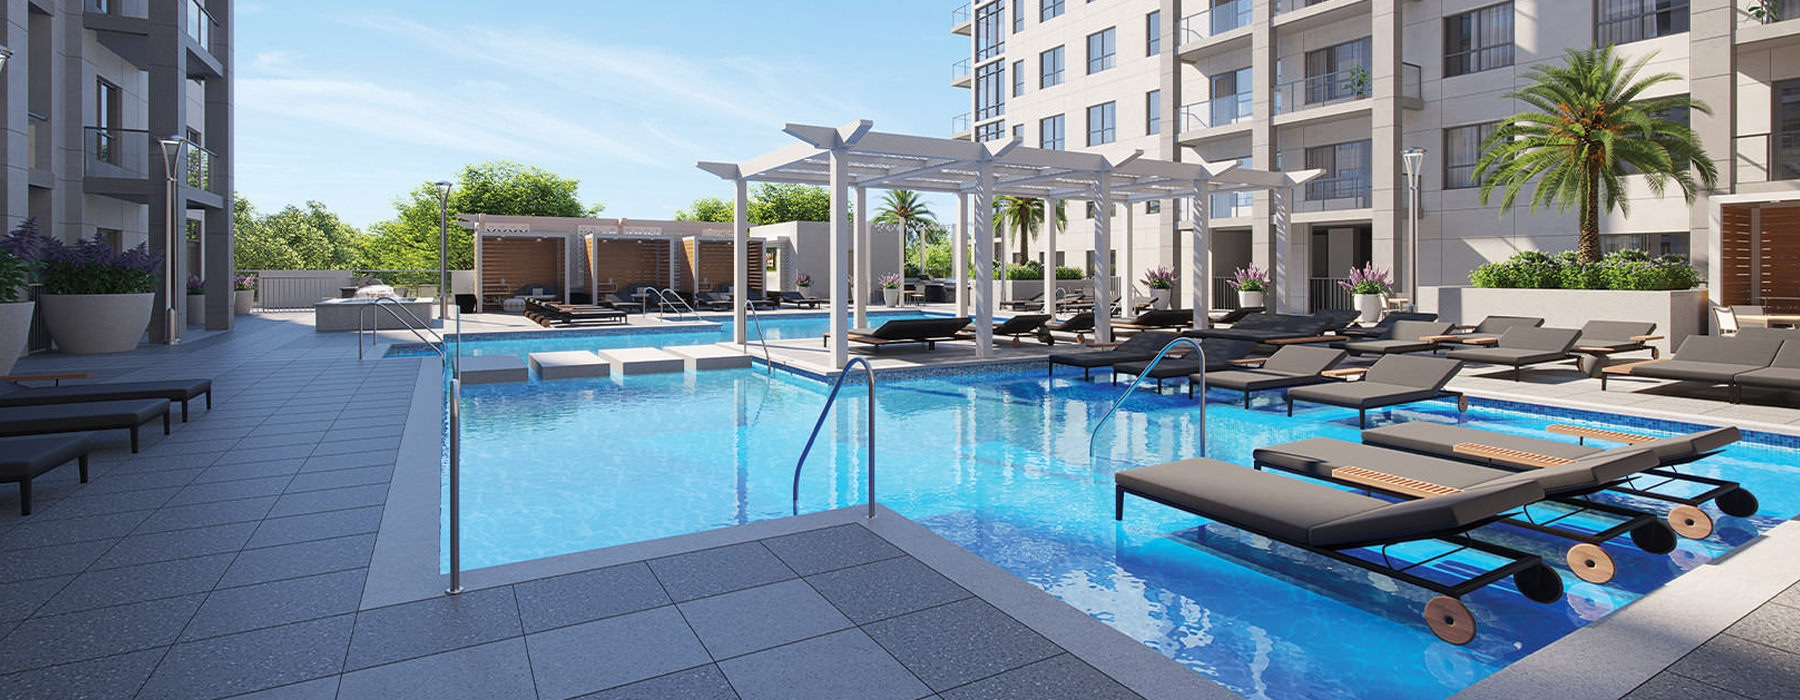 Large pool rendering with lounging chairs and umbrella topped tables and chairs